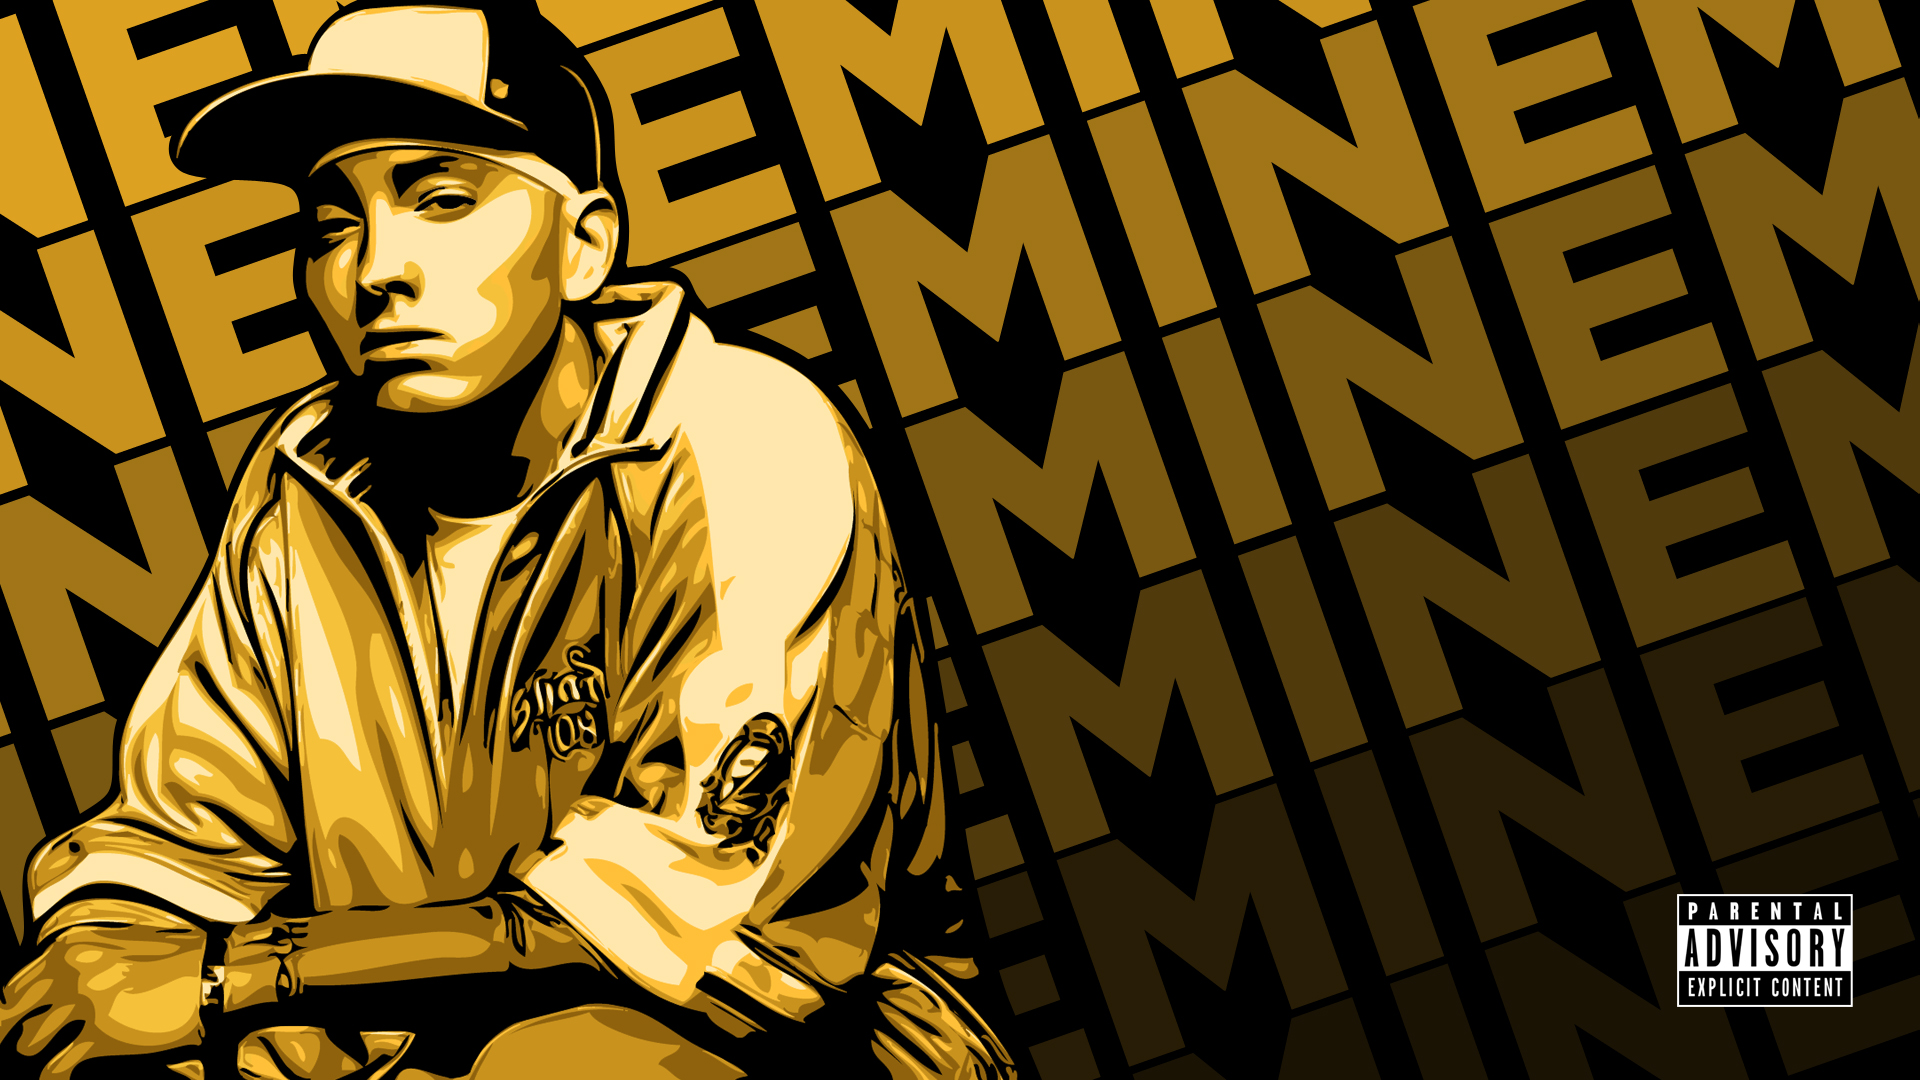 Eminem HD 19 Rap Wallpapers 1920x1080